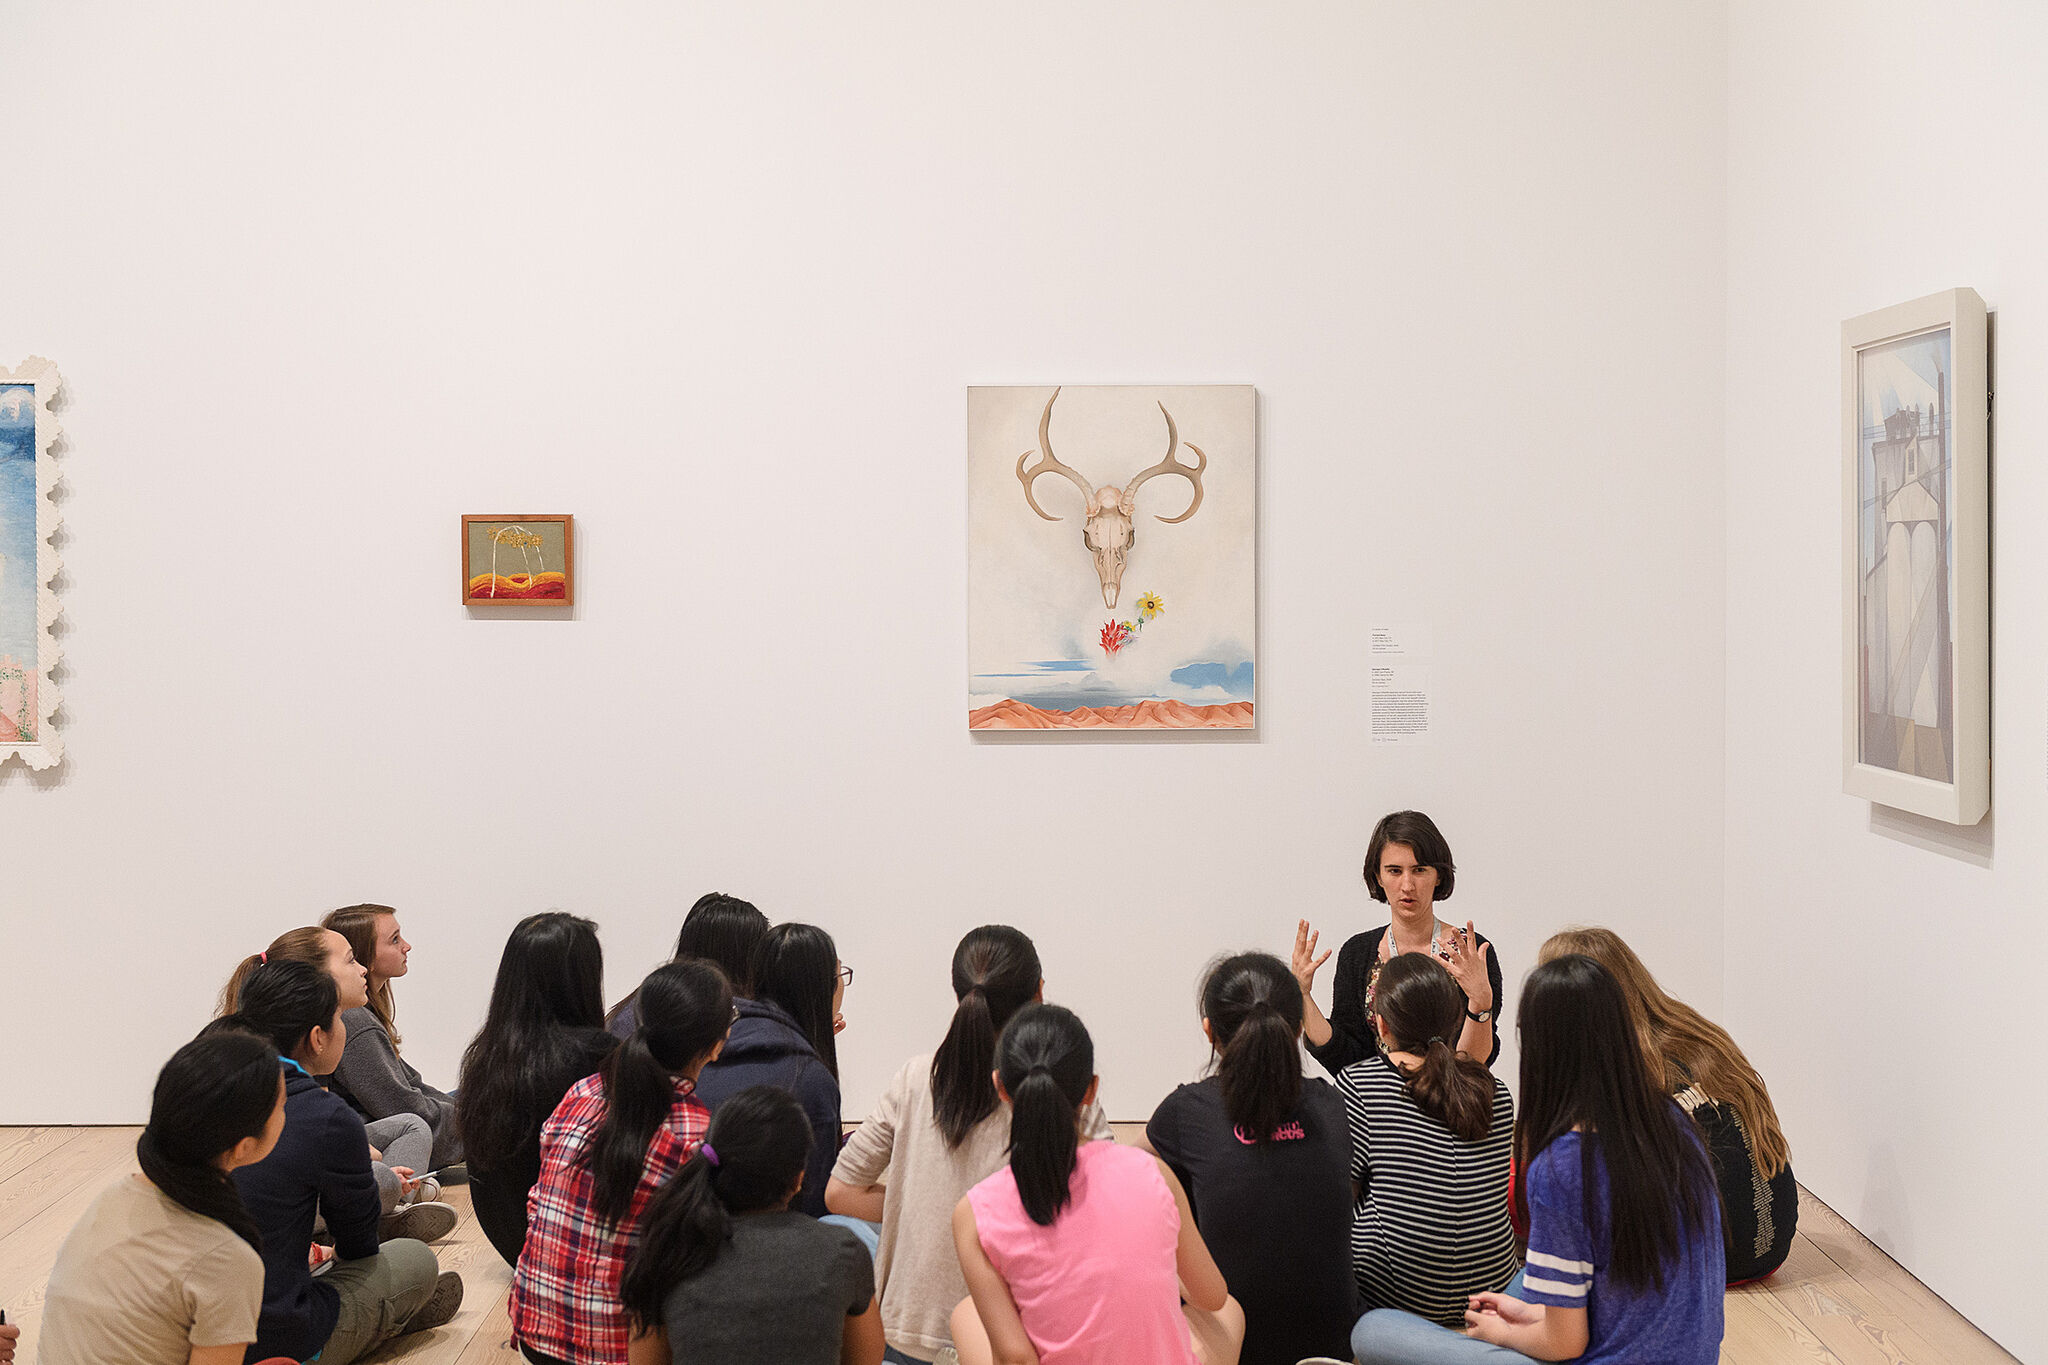 Students sitting and listening to teacher in gallery.